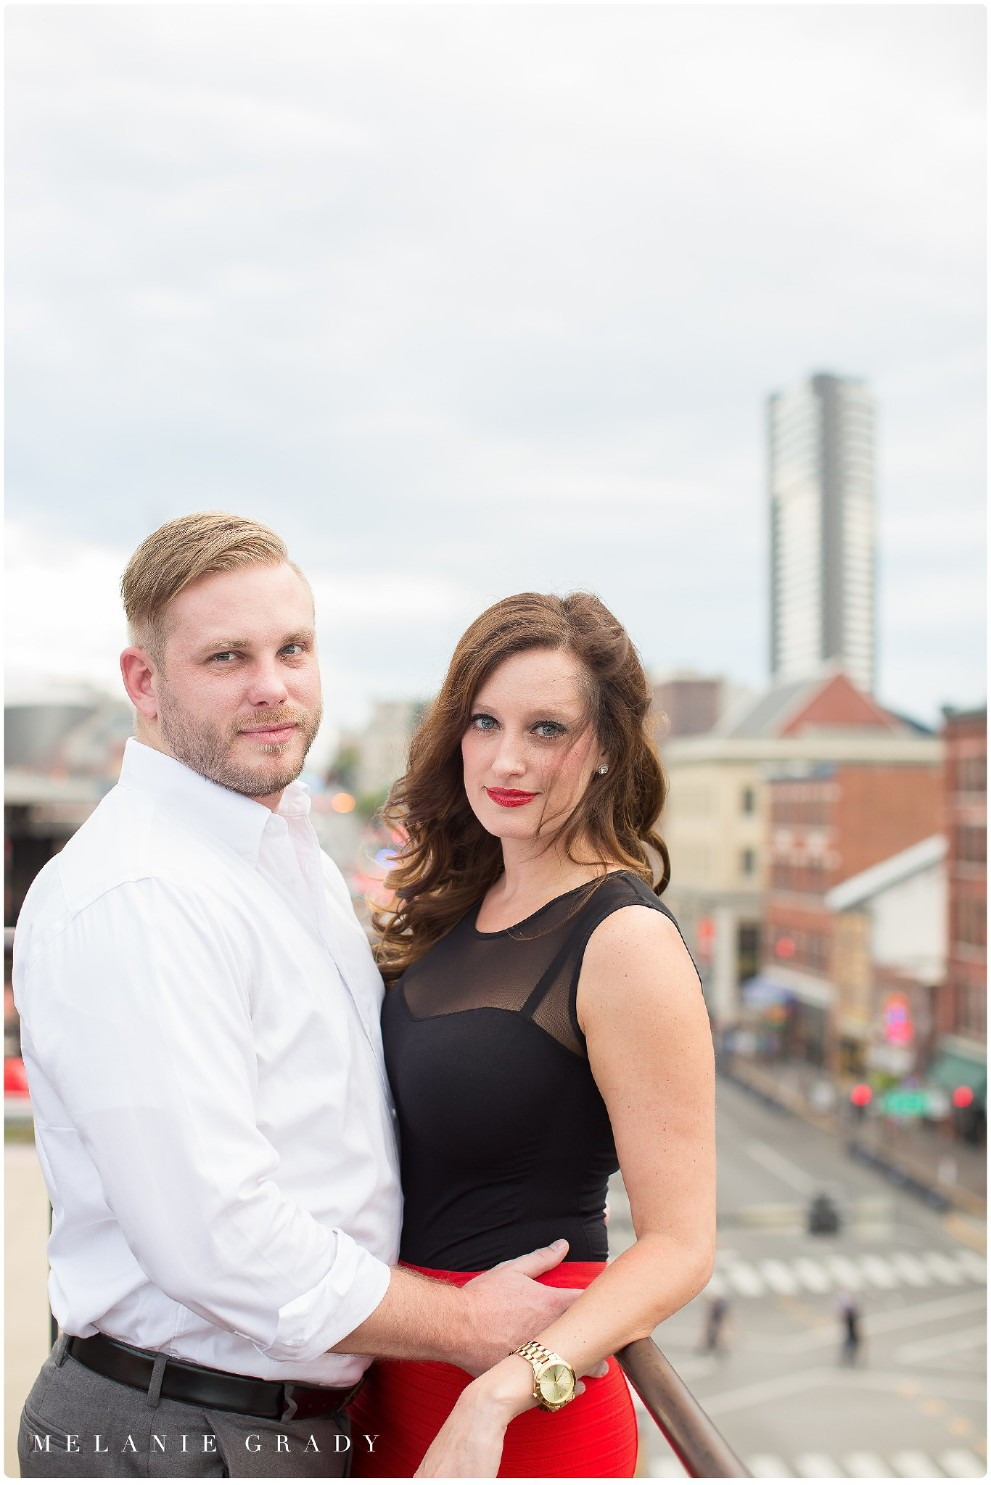 the best nashville engagement photographer, Melanie Grady nashville wedding photographer, downtown nashville engagement photography, she said yes, red skirt, red lips, red and black engagement session